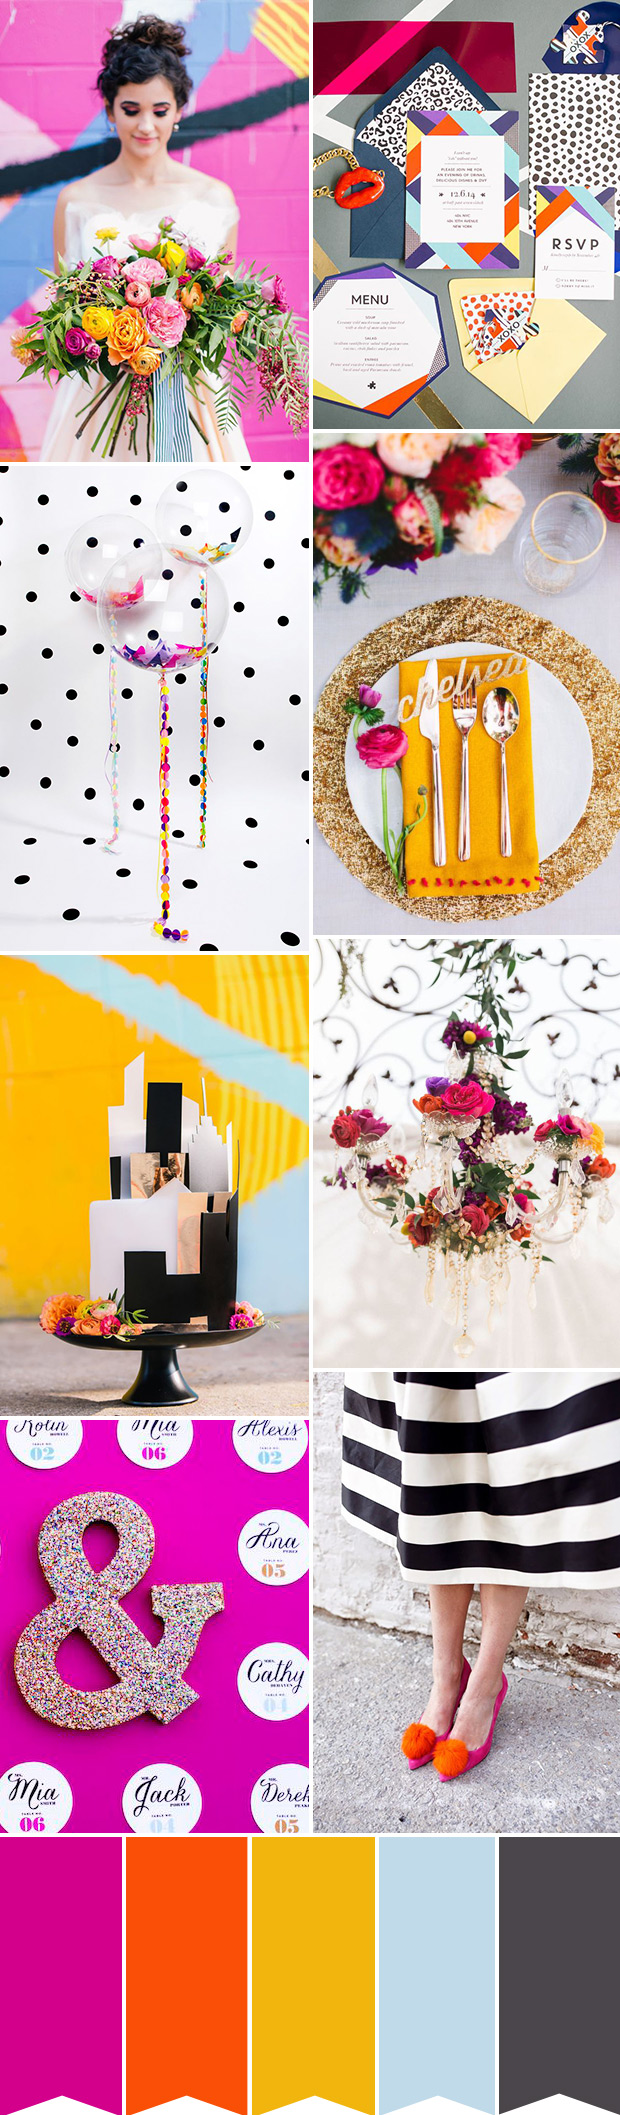 monochrome-and-color-pop-wedding-inspiration.jpg